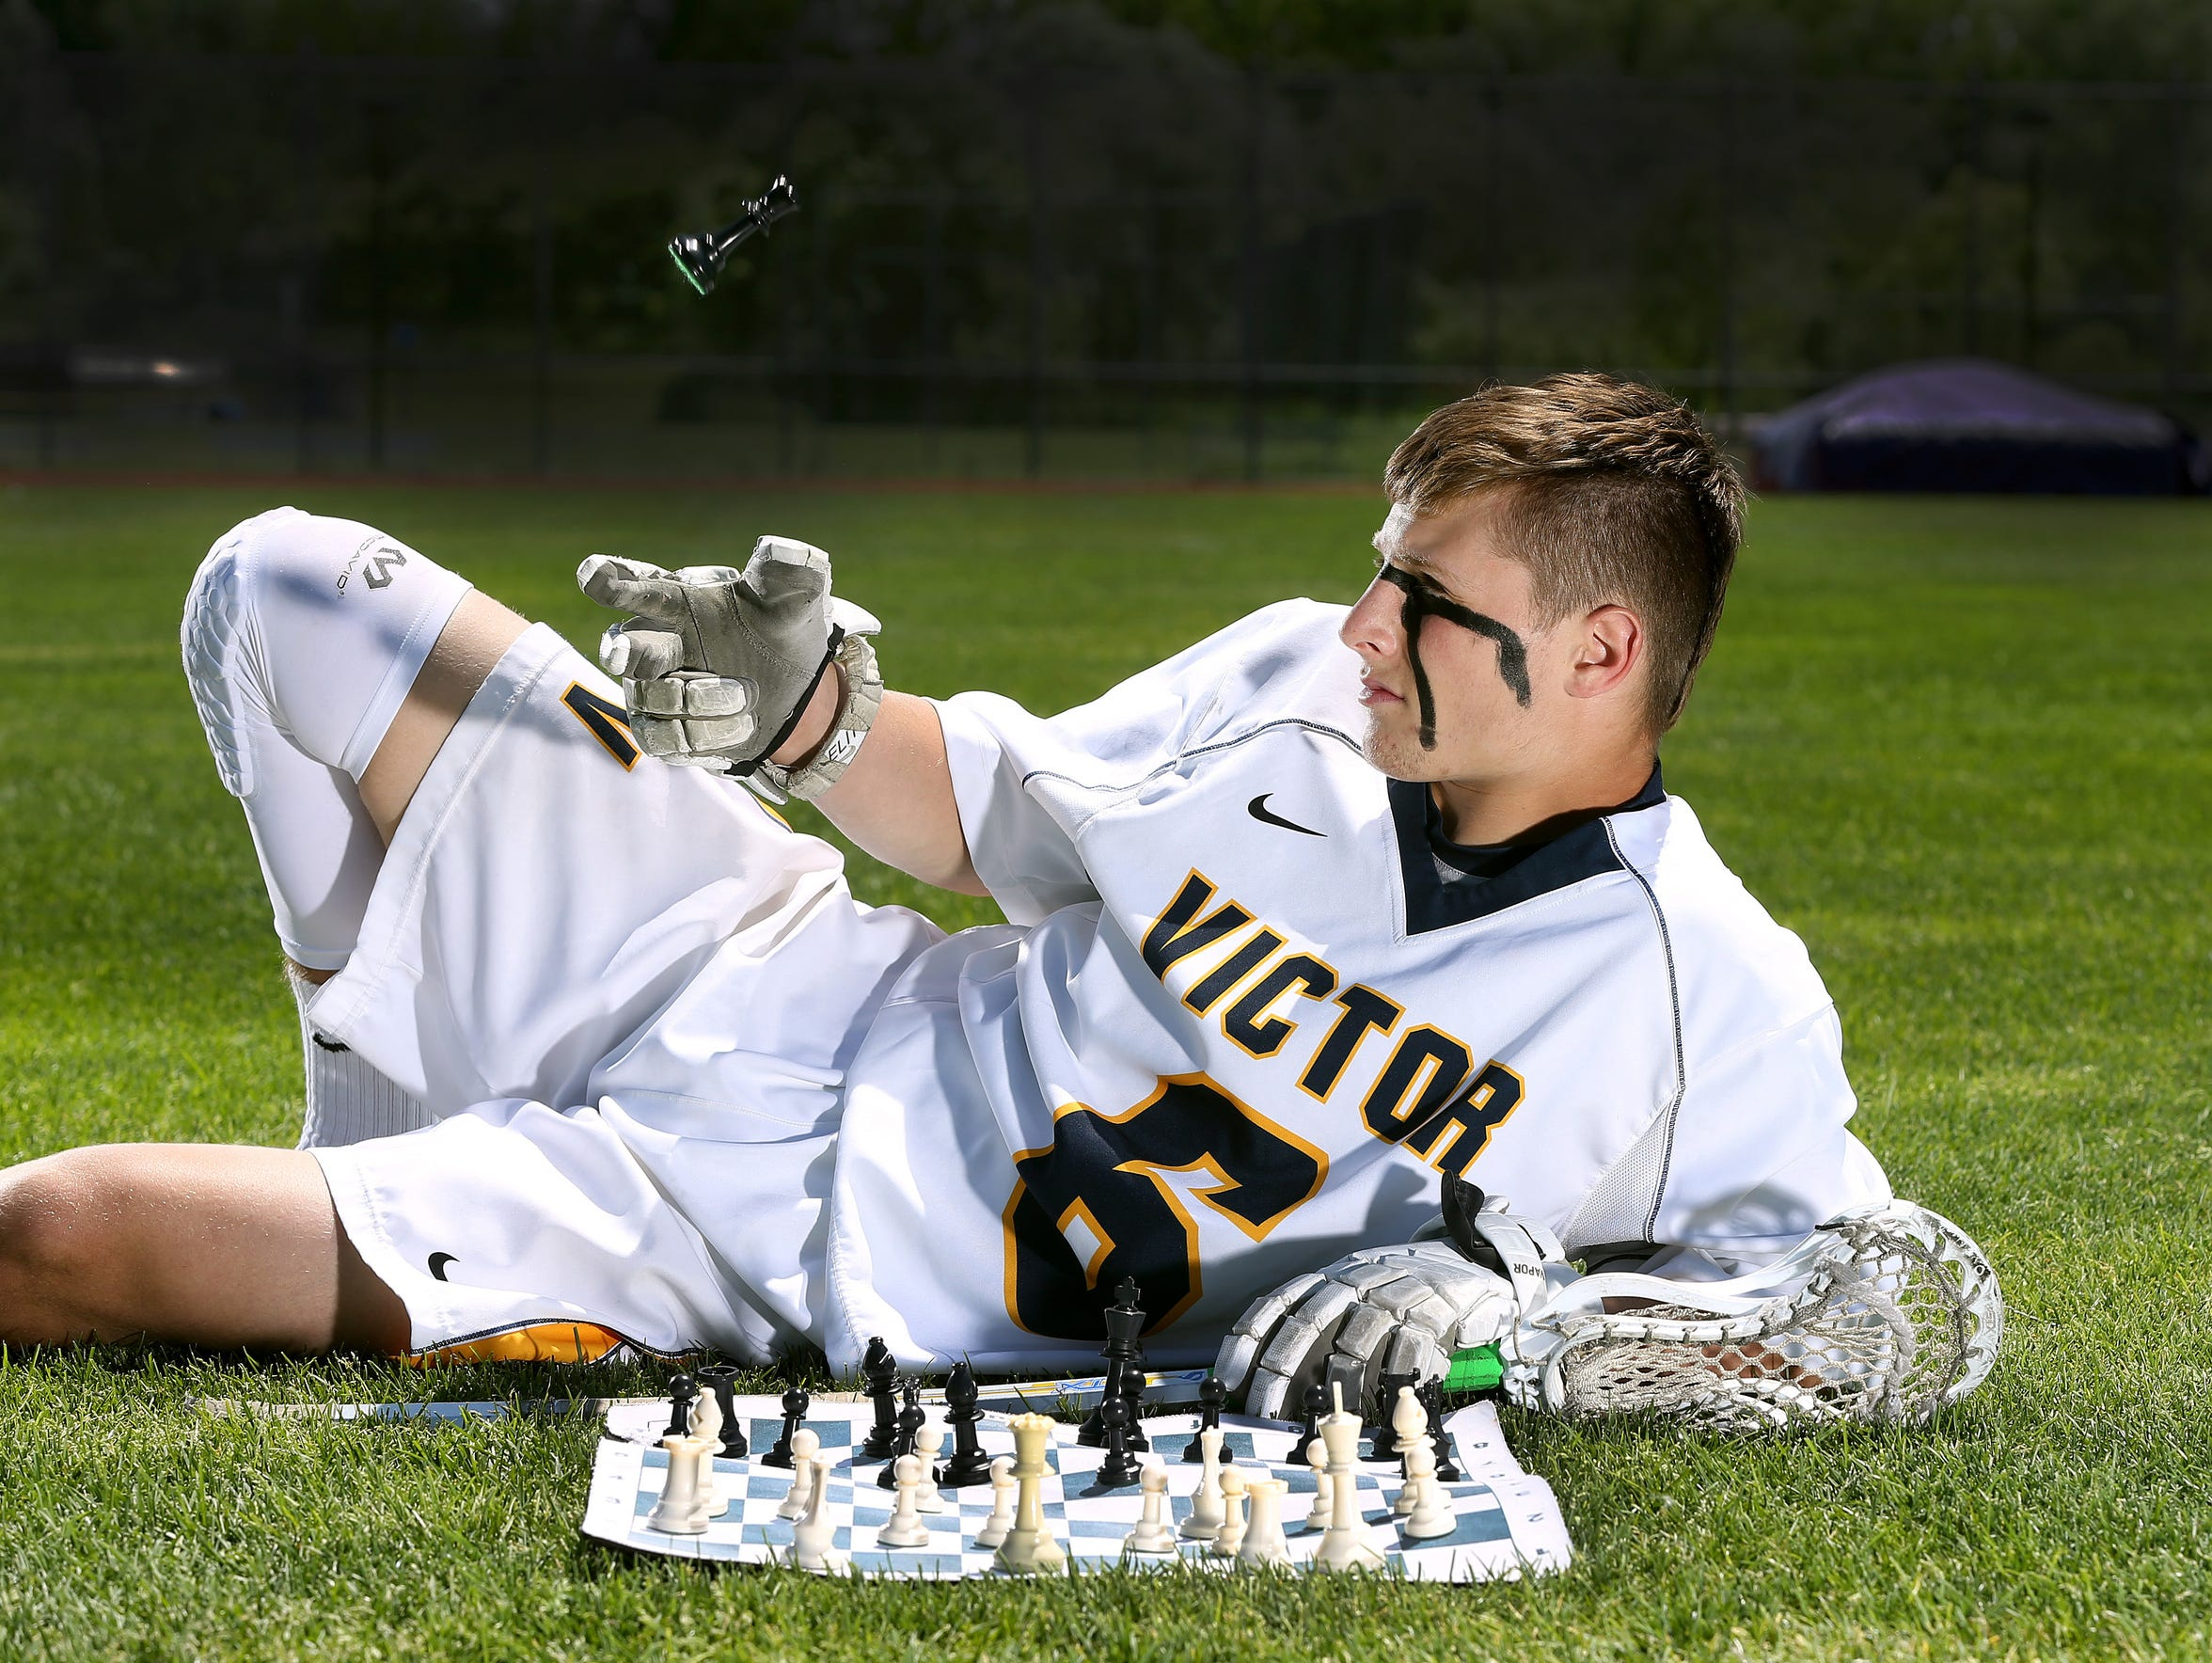 Victor lacrosse player TD Ierlan is also a member of